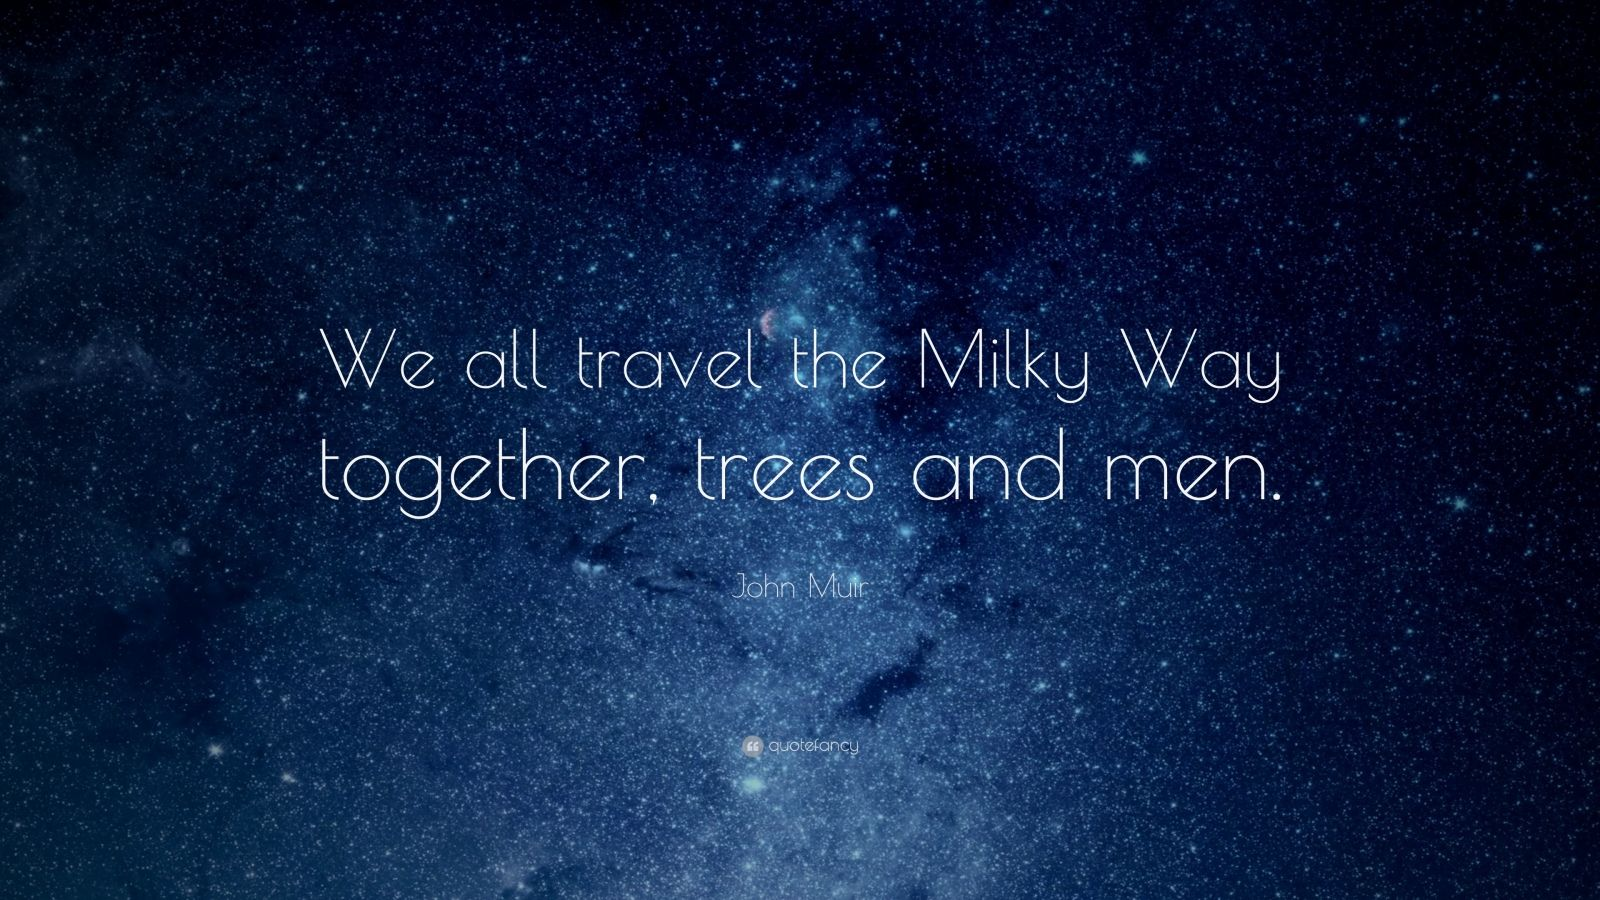 John Muir Quotes Wallpaper John Muir Quote We All Travel The Milky Way Together